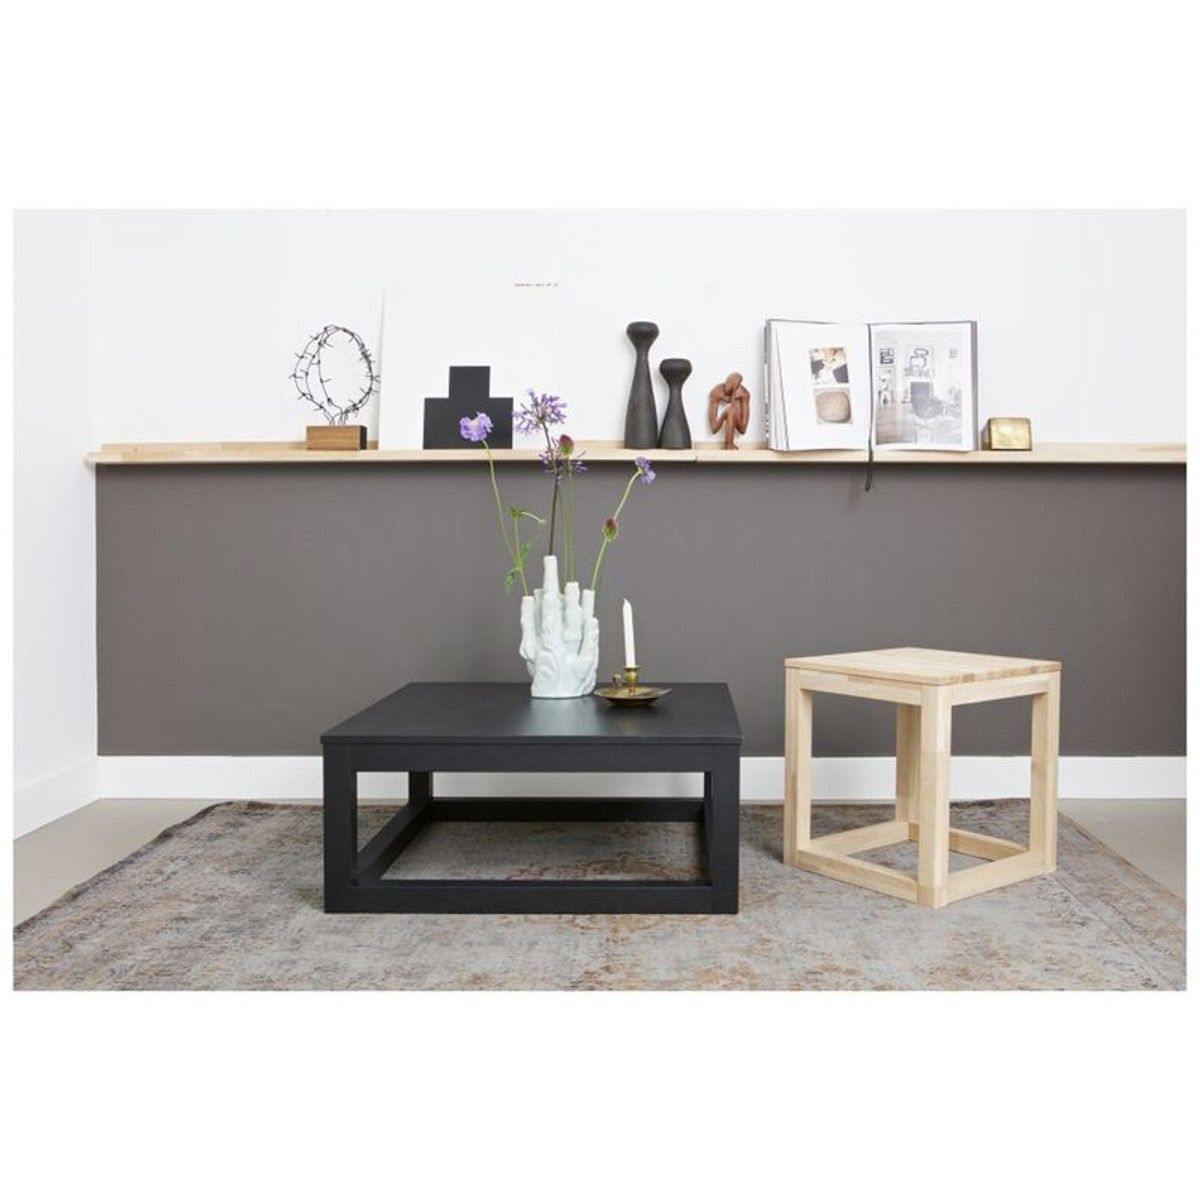 Wout Table Basse Chene Massif 85x85 Avec Images Table Basse Table Basse Chene Massif Table Basse Chene